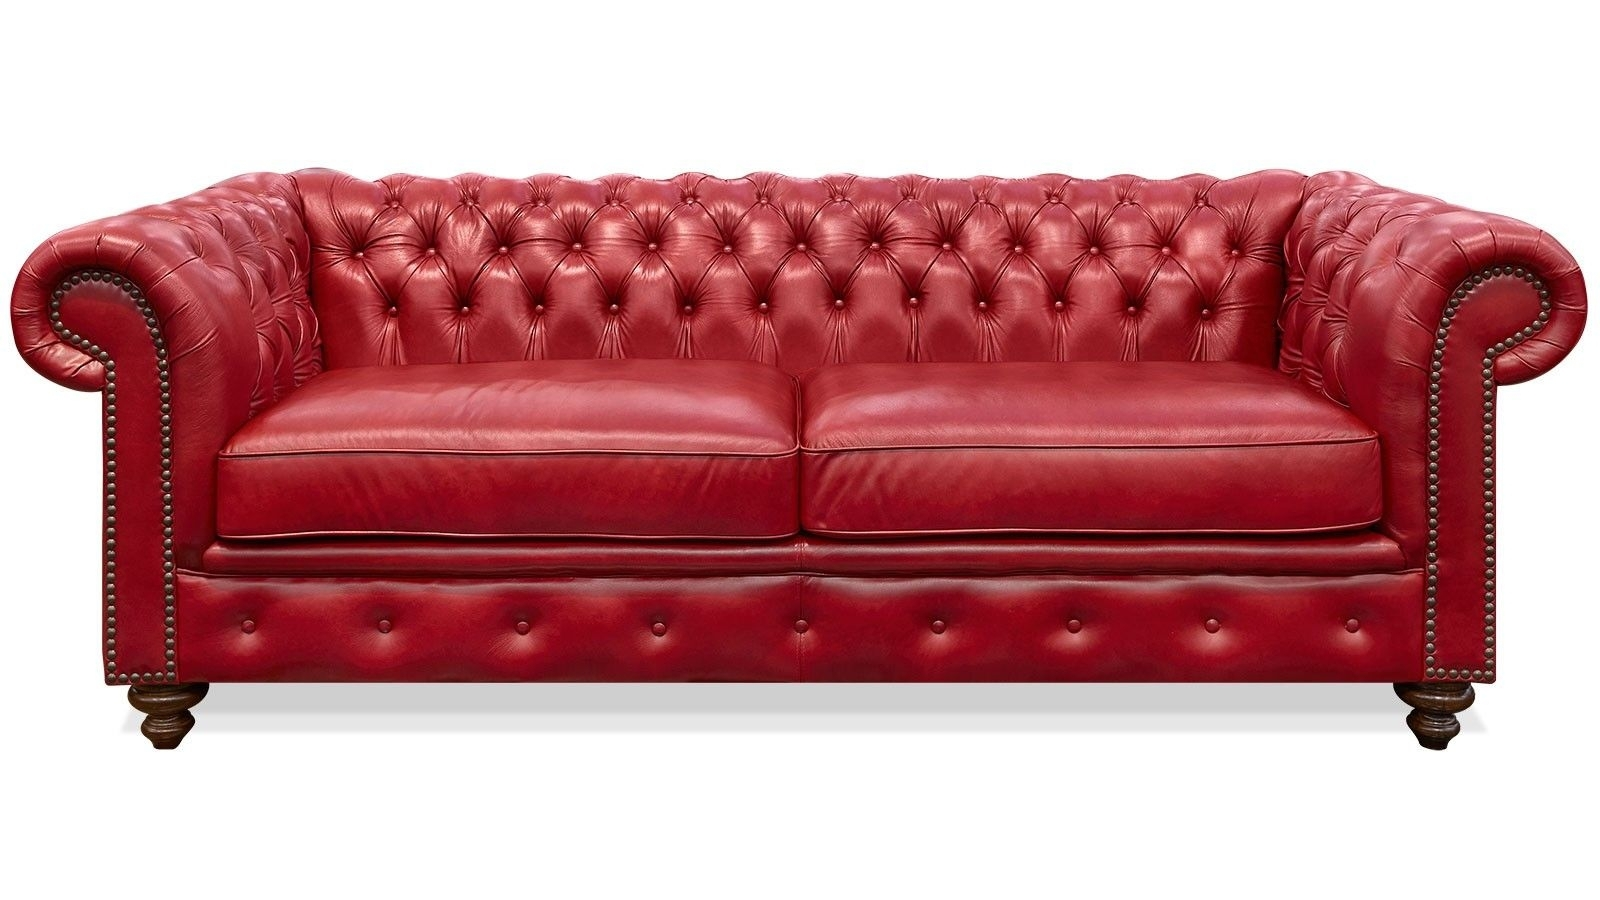 Unbelievable Red Leather Sofa With Jinanhongyu Picture For Trend And throughout Red Leather Couches (Image 15 of 15)